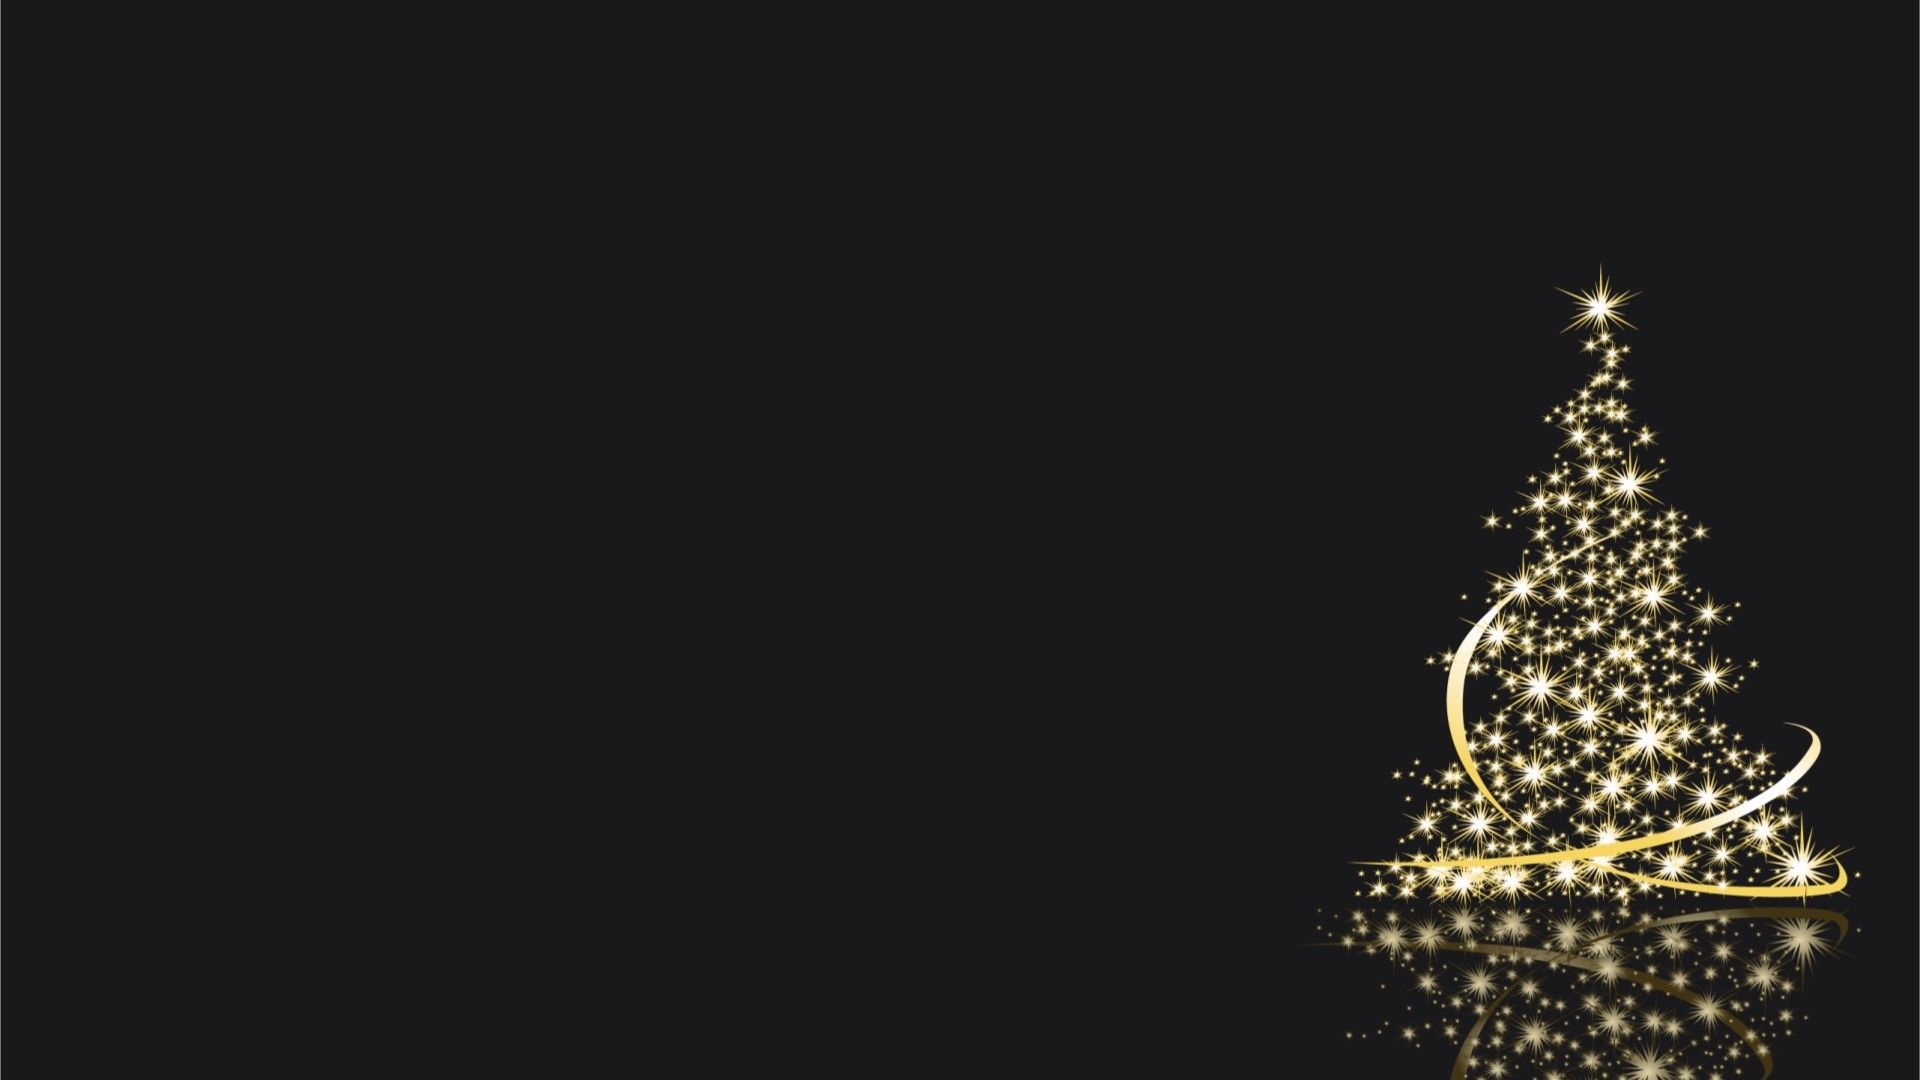 Small Golden Christmas Tree In The Dark Night Christmas Holiday Wallpapers Christm Christmas Wallpaper Hd Holiday Wallpaper Christmas Wallpaper Backgrounds